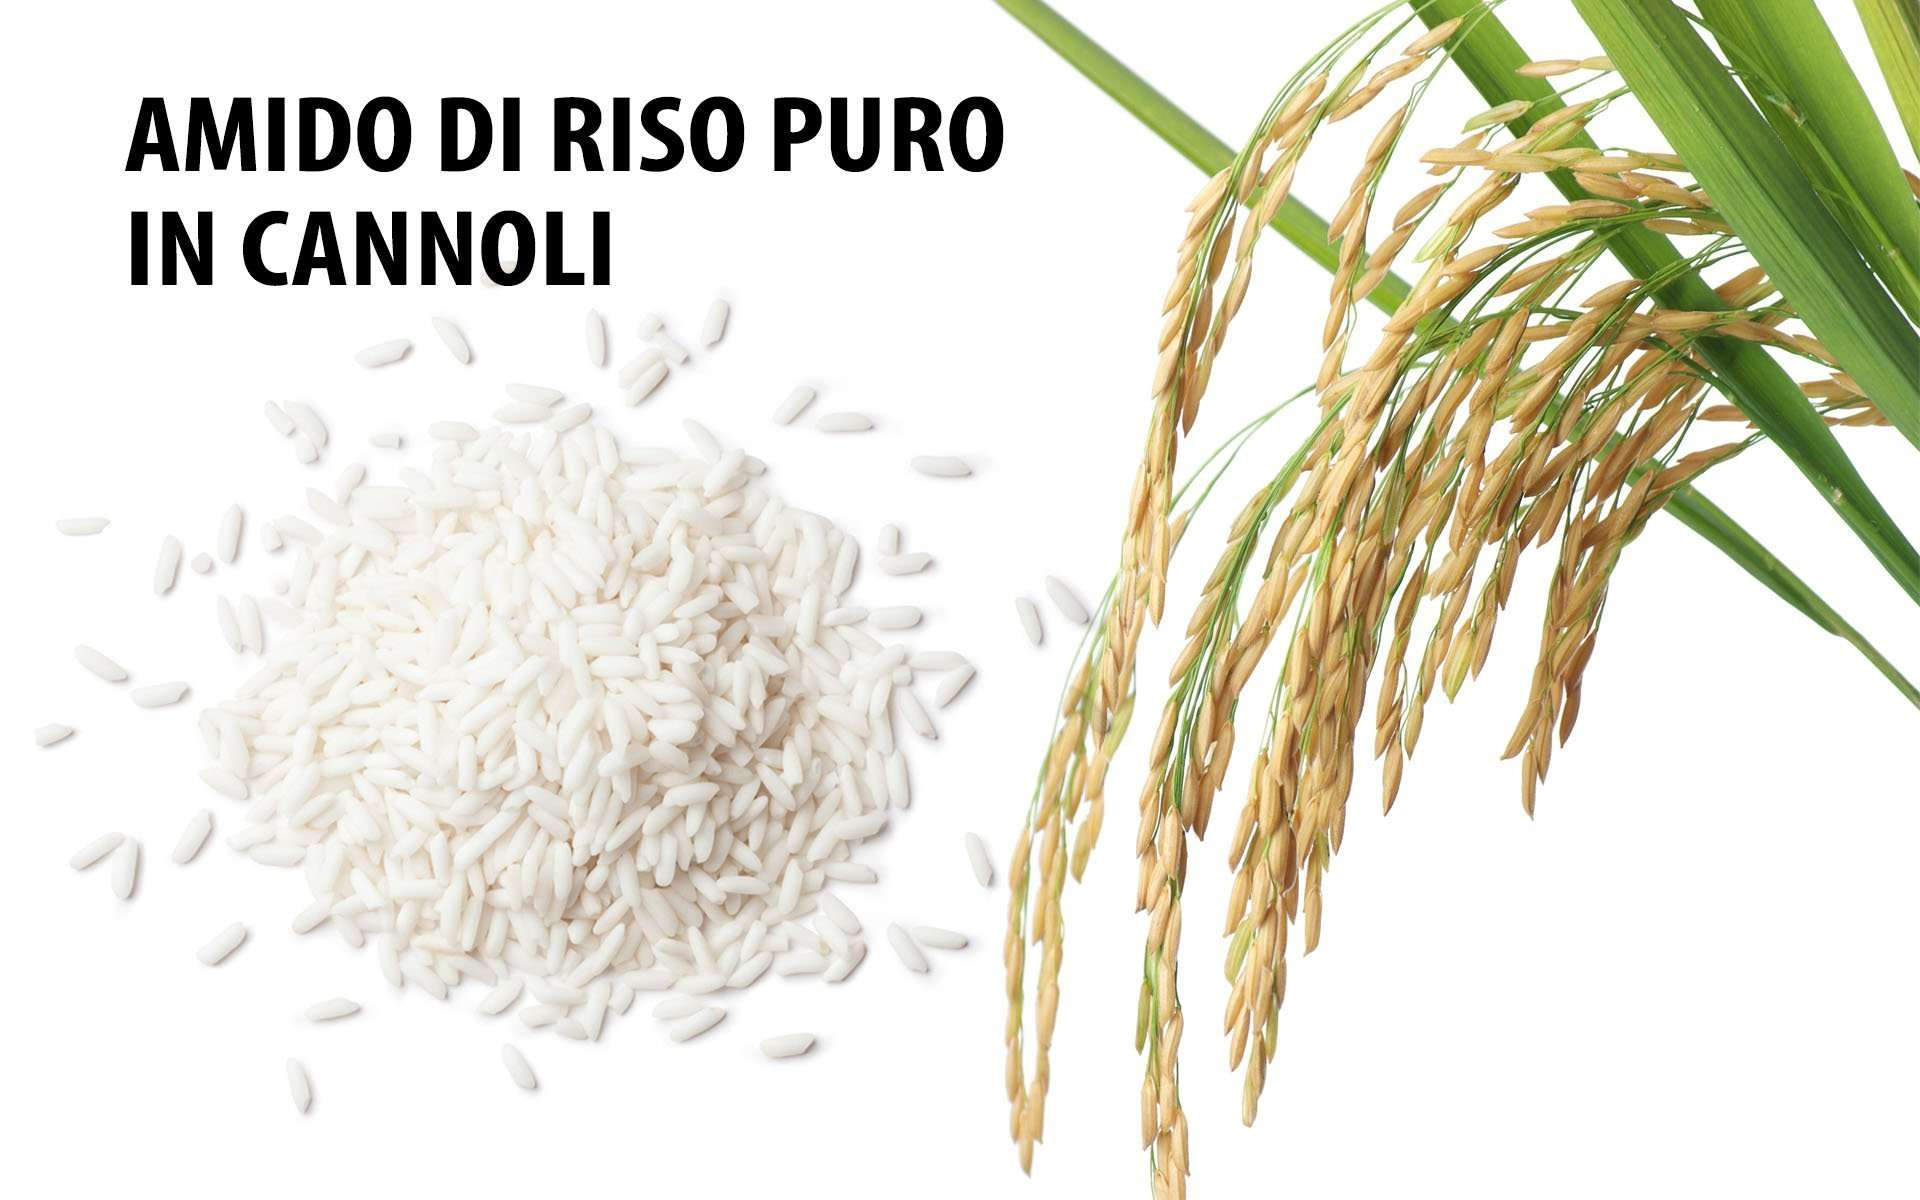 Ingrediente amido di riso puro